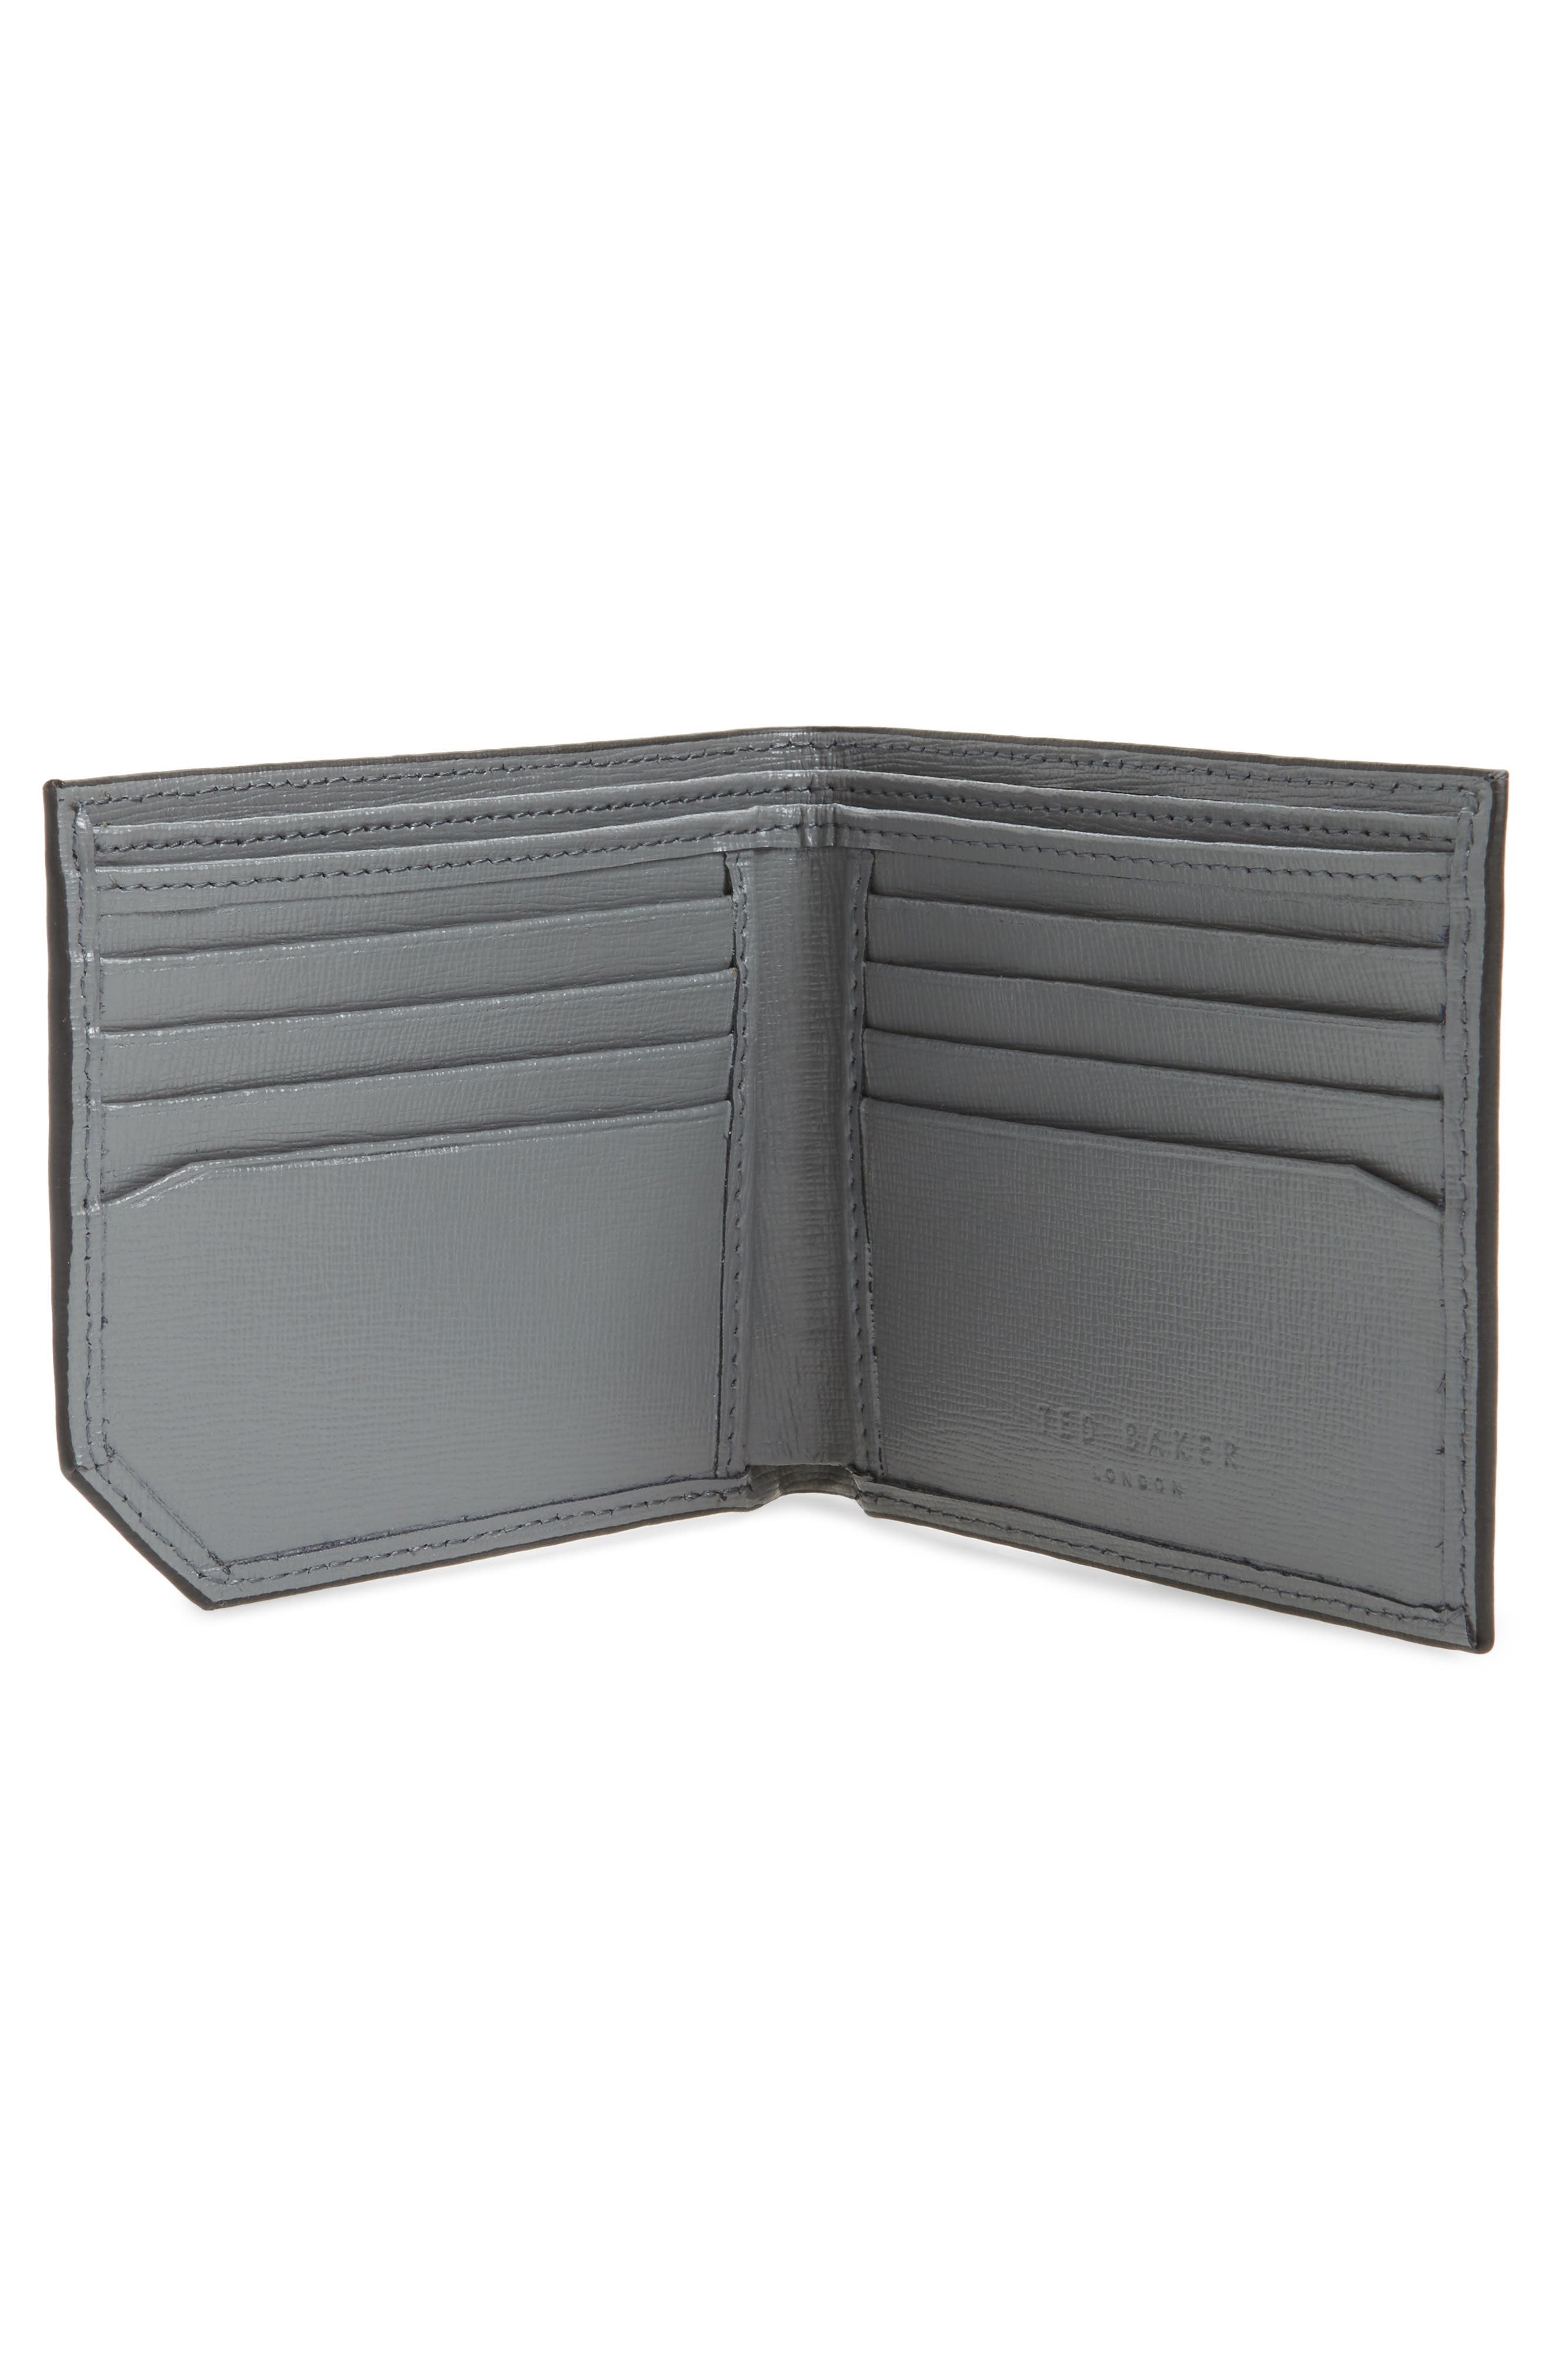 Stitchup Bifold Wallet,                             Alternate thumbnail 4, color,